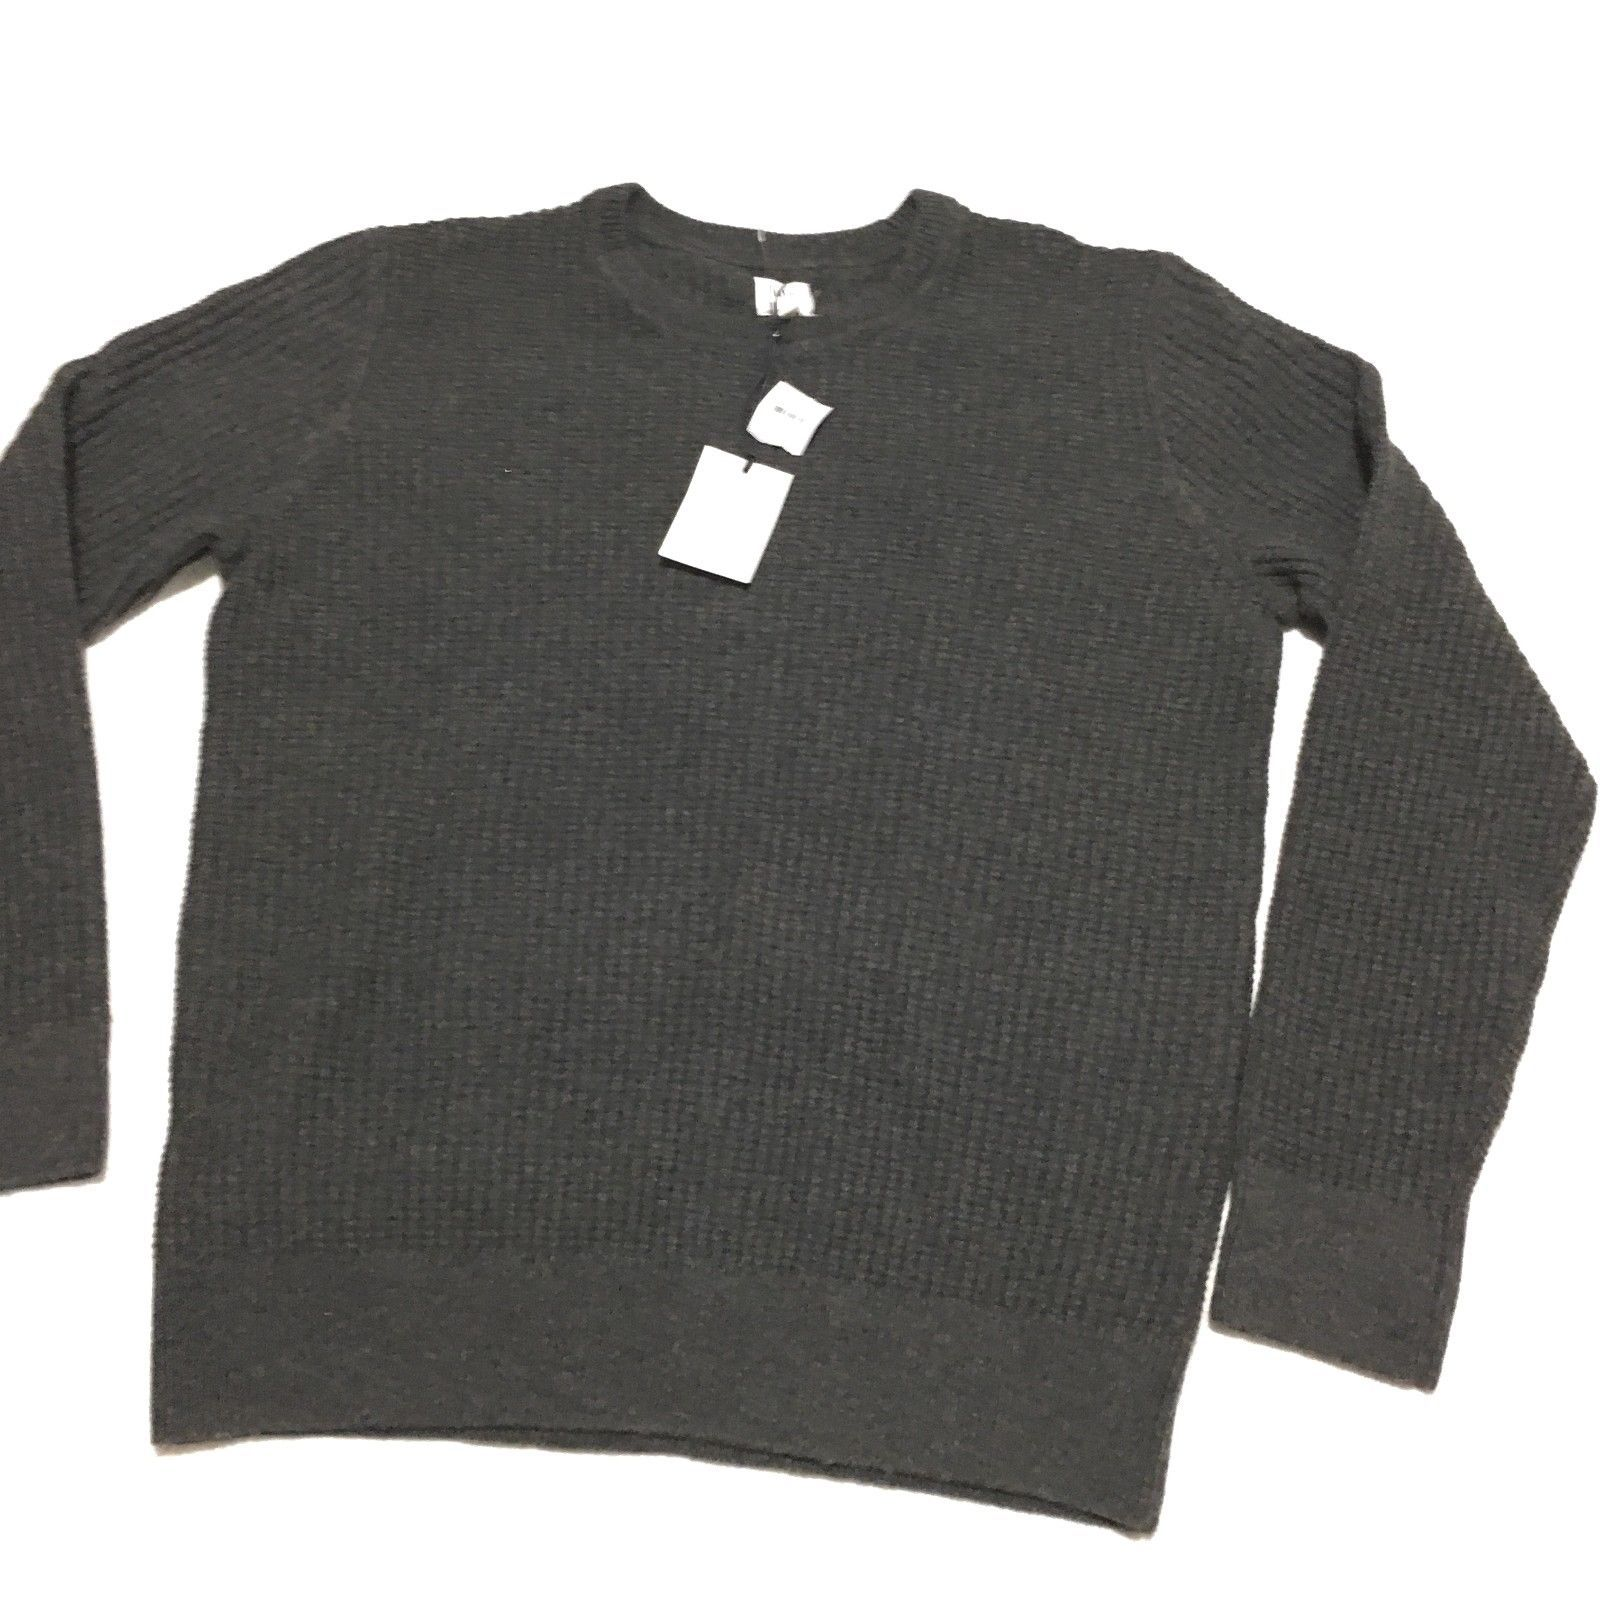 NWT GAP Men's Gray Wool Blend Knit Crew Neck Sweater Large - $24.30